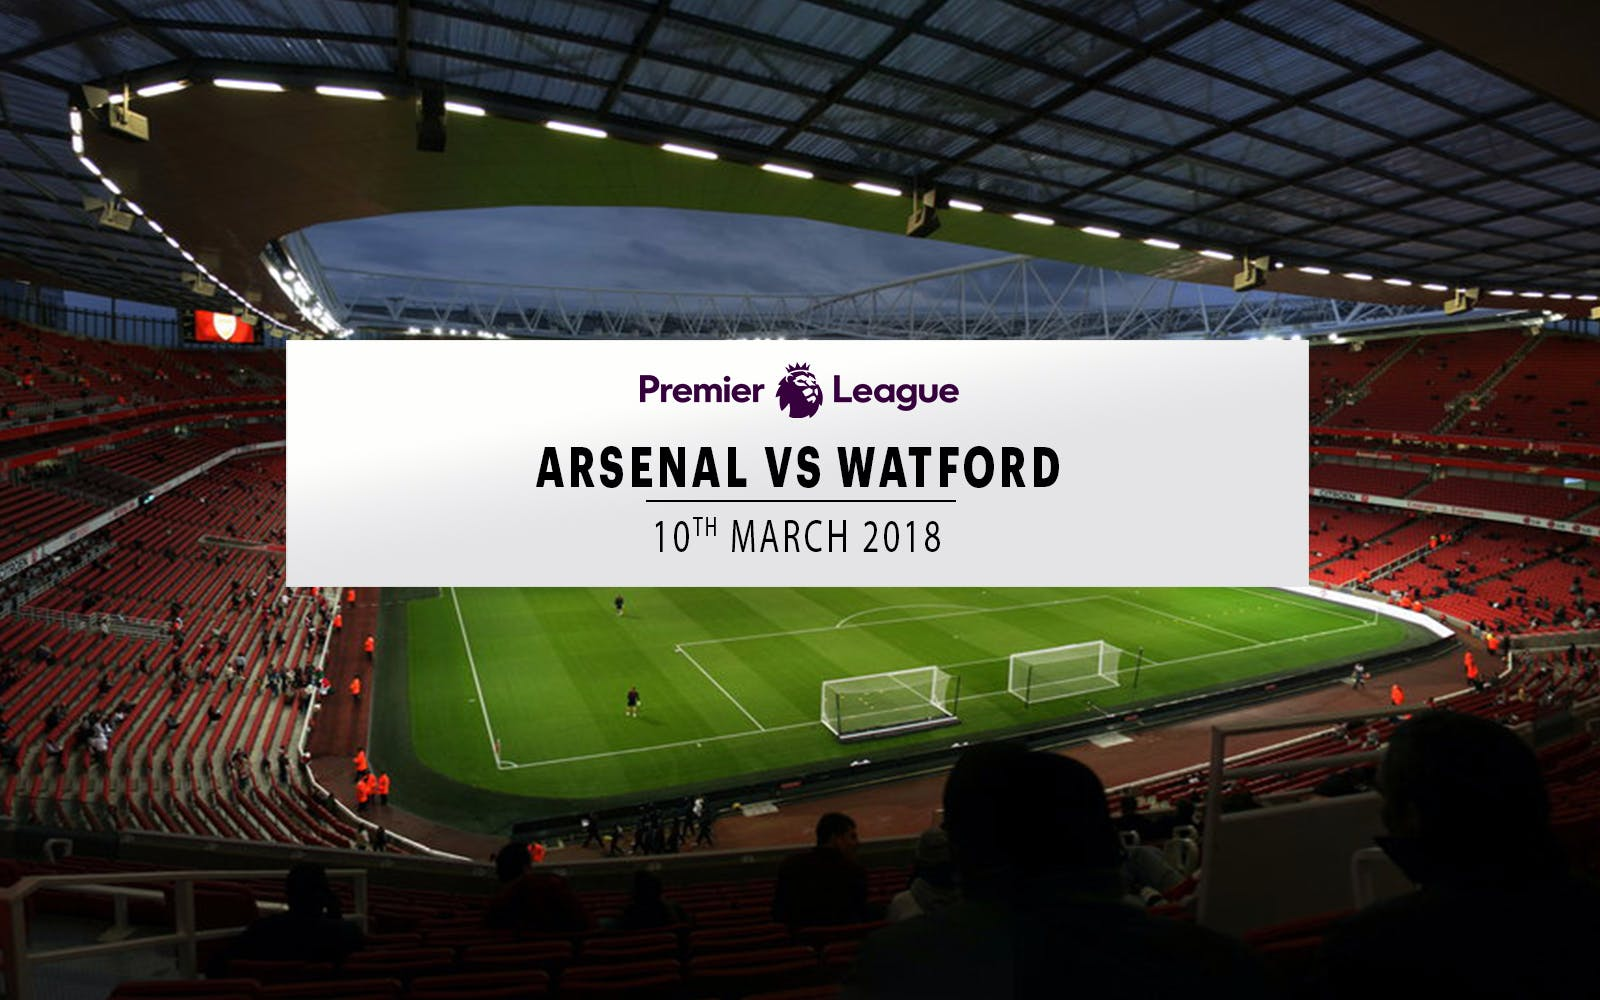 arsenal vs watford -1